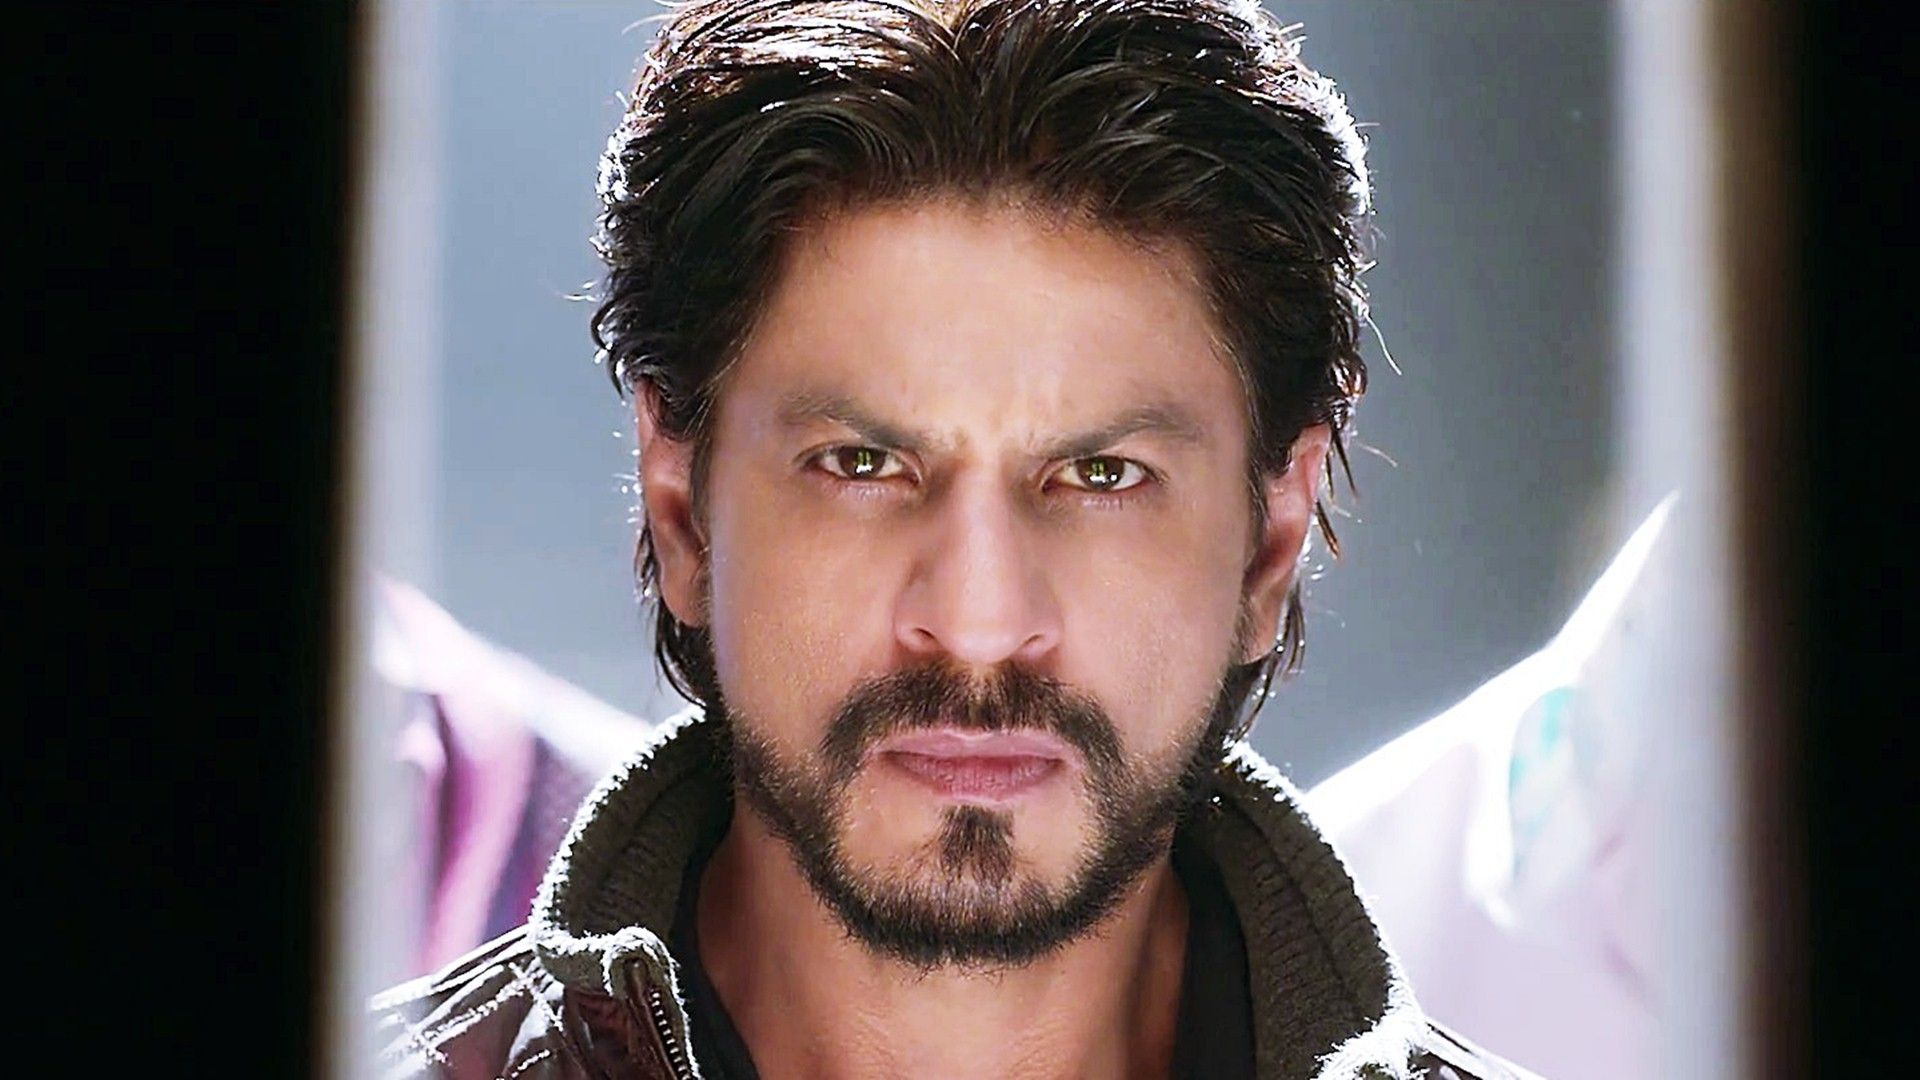 shahrukh khan hd wallpapers 2015 - etc fn | eye candy | pinterest